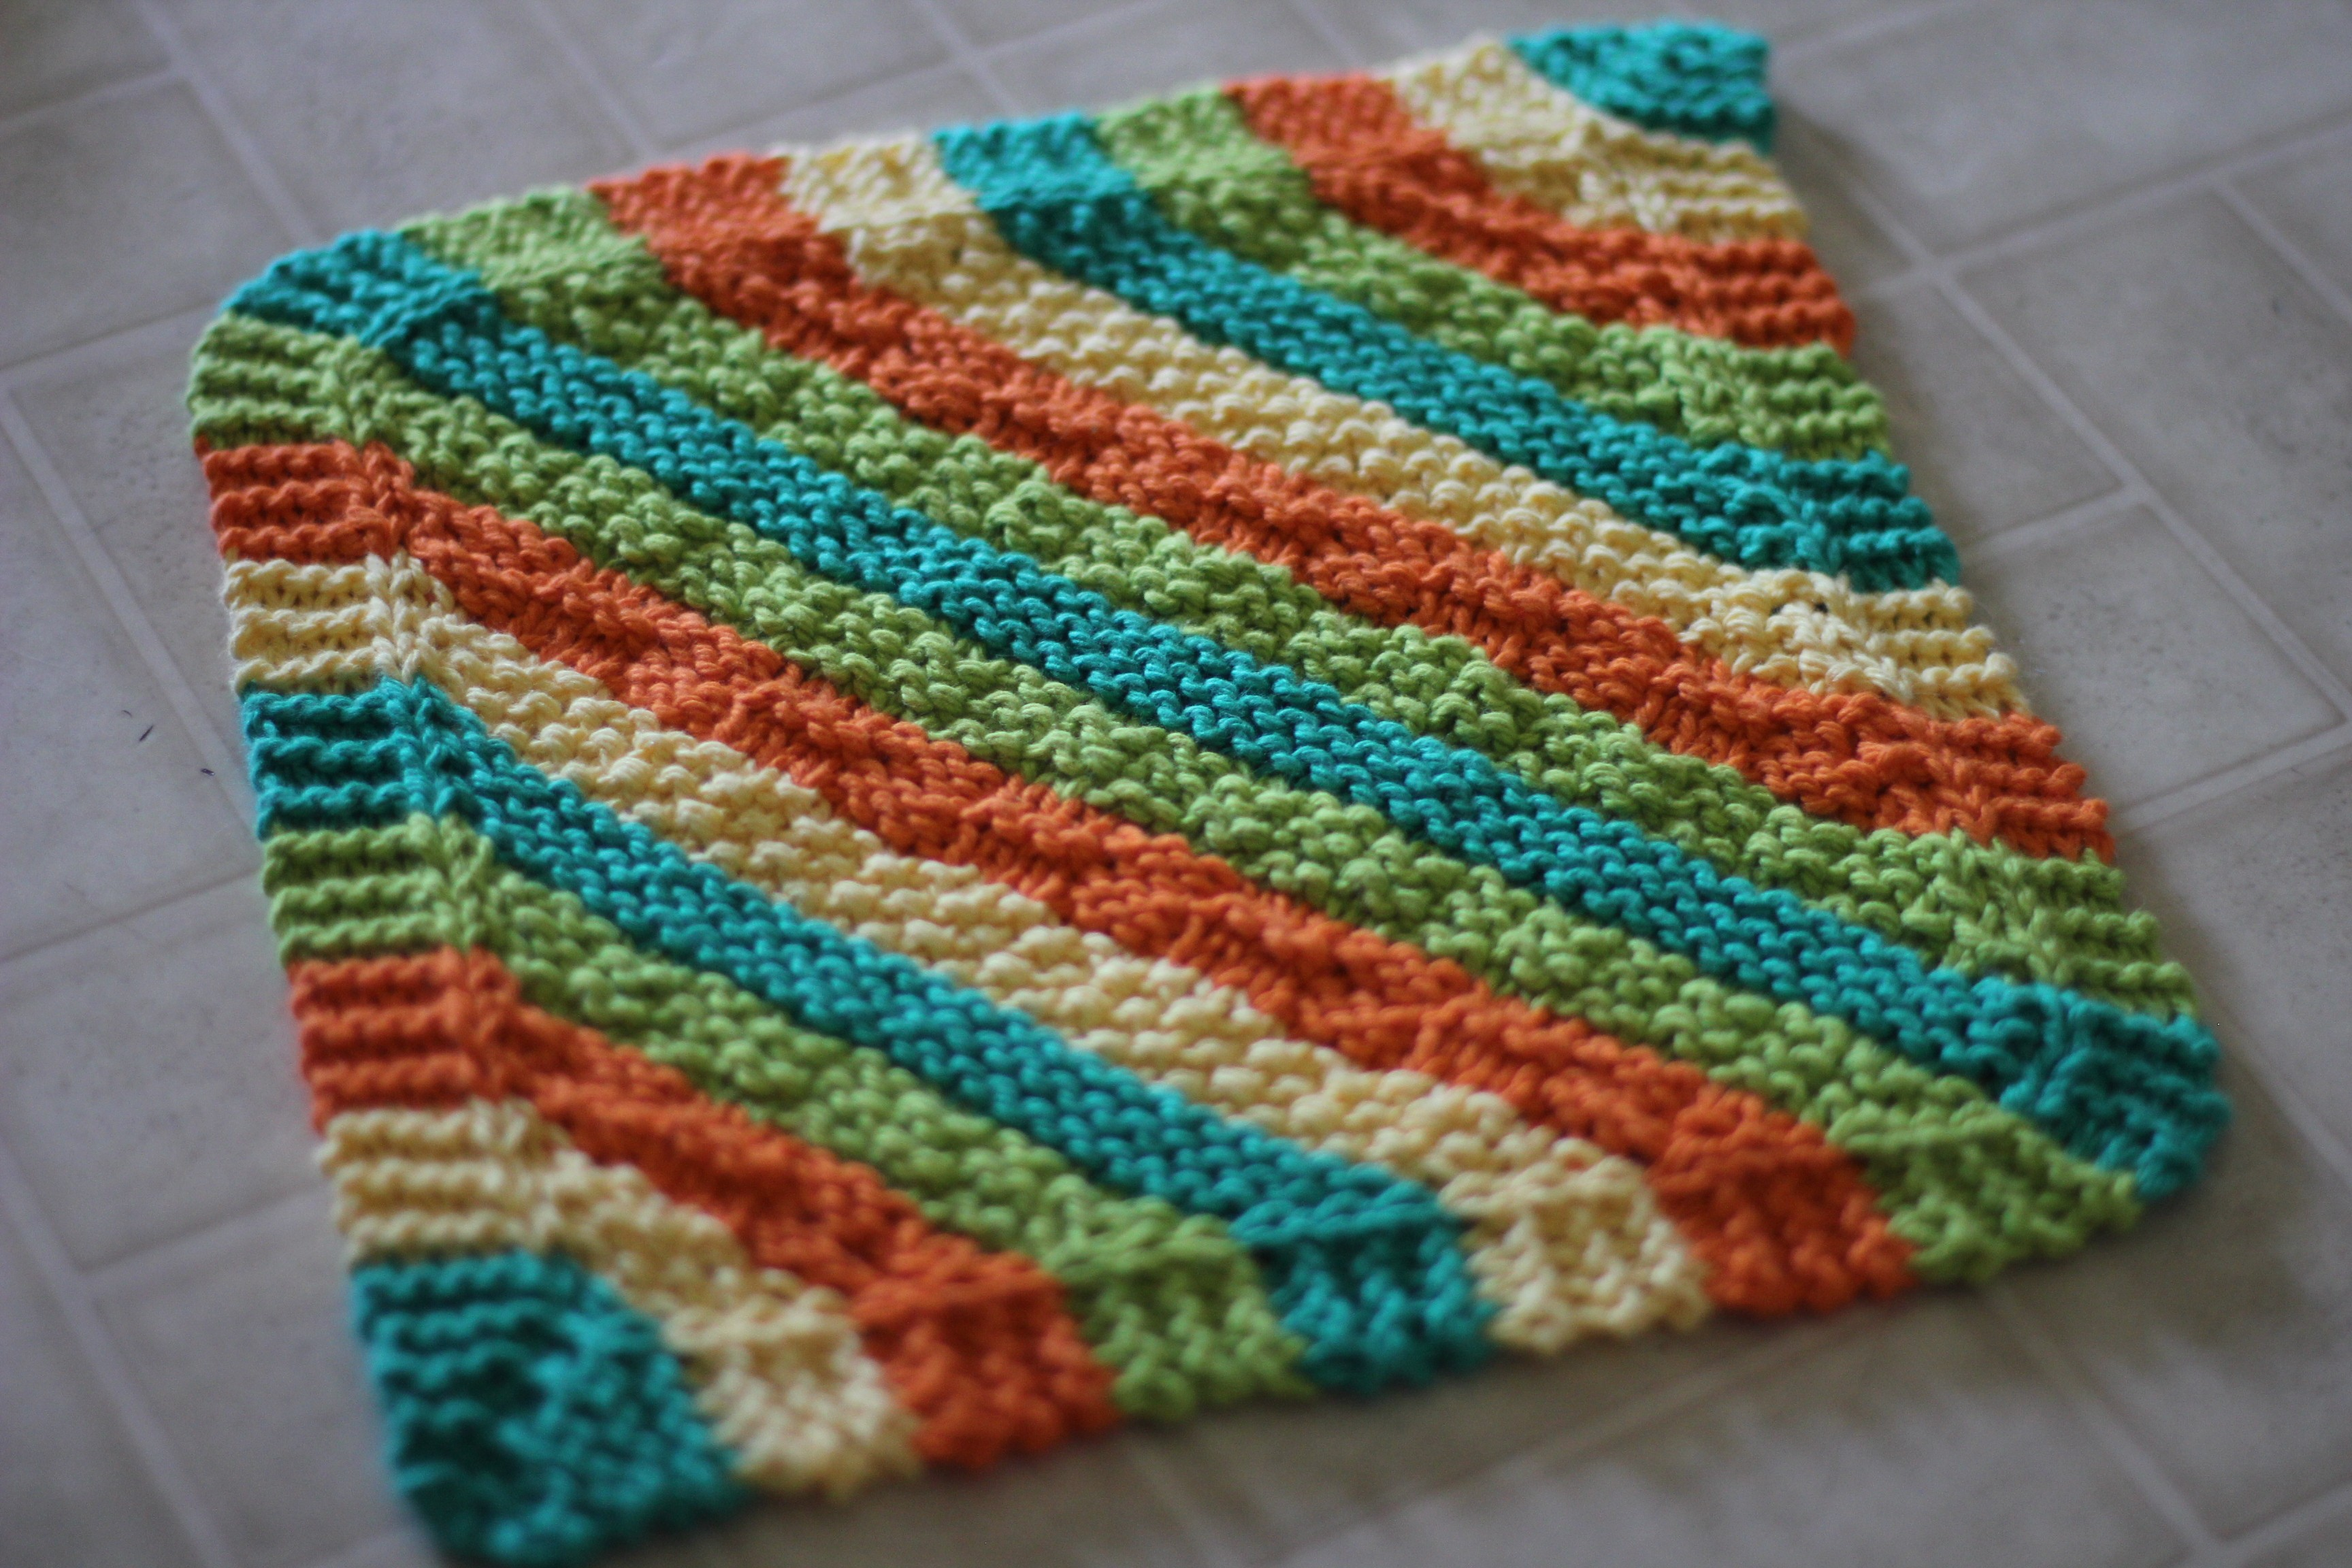 Dishcloth Knitting Pattern : Knit Dishcloth Directions Related Keywords - Knit ...